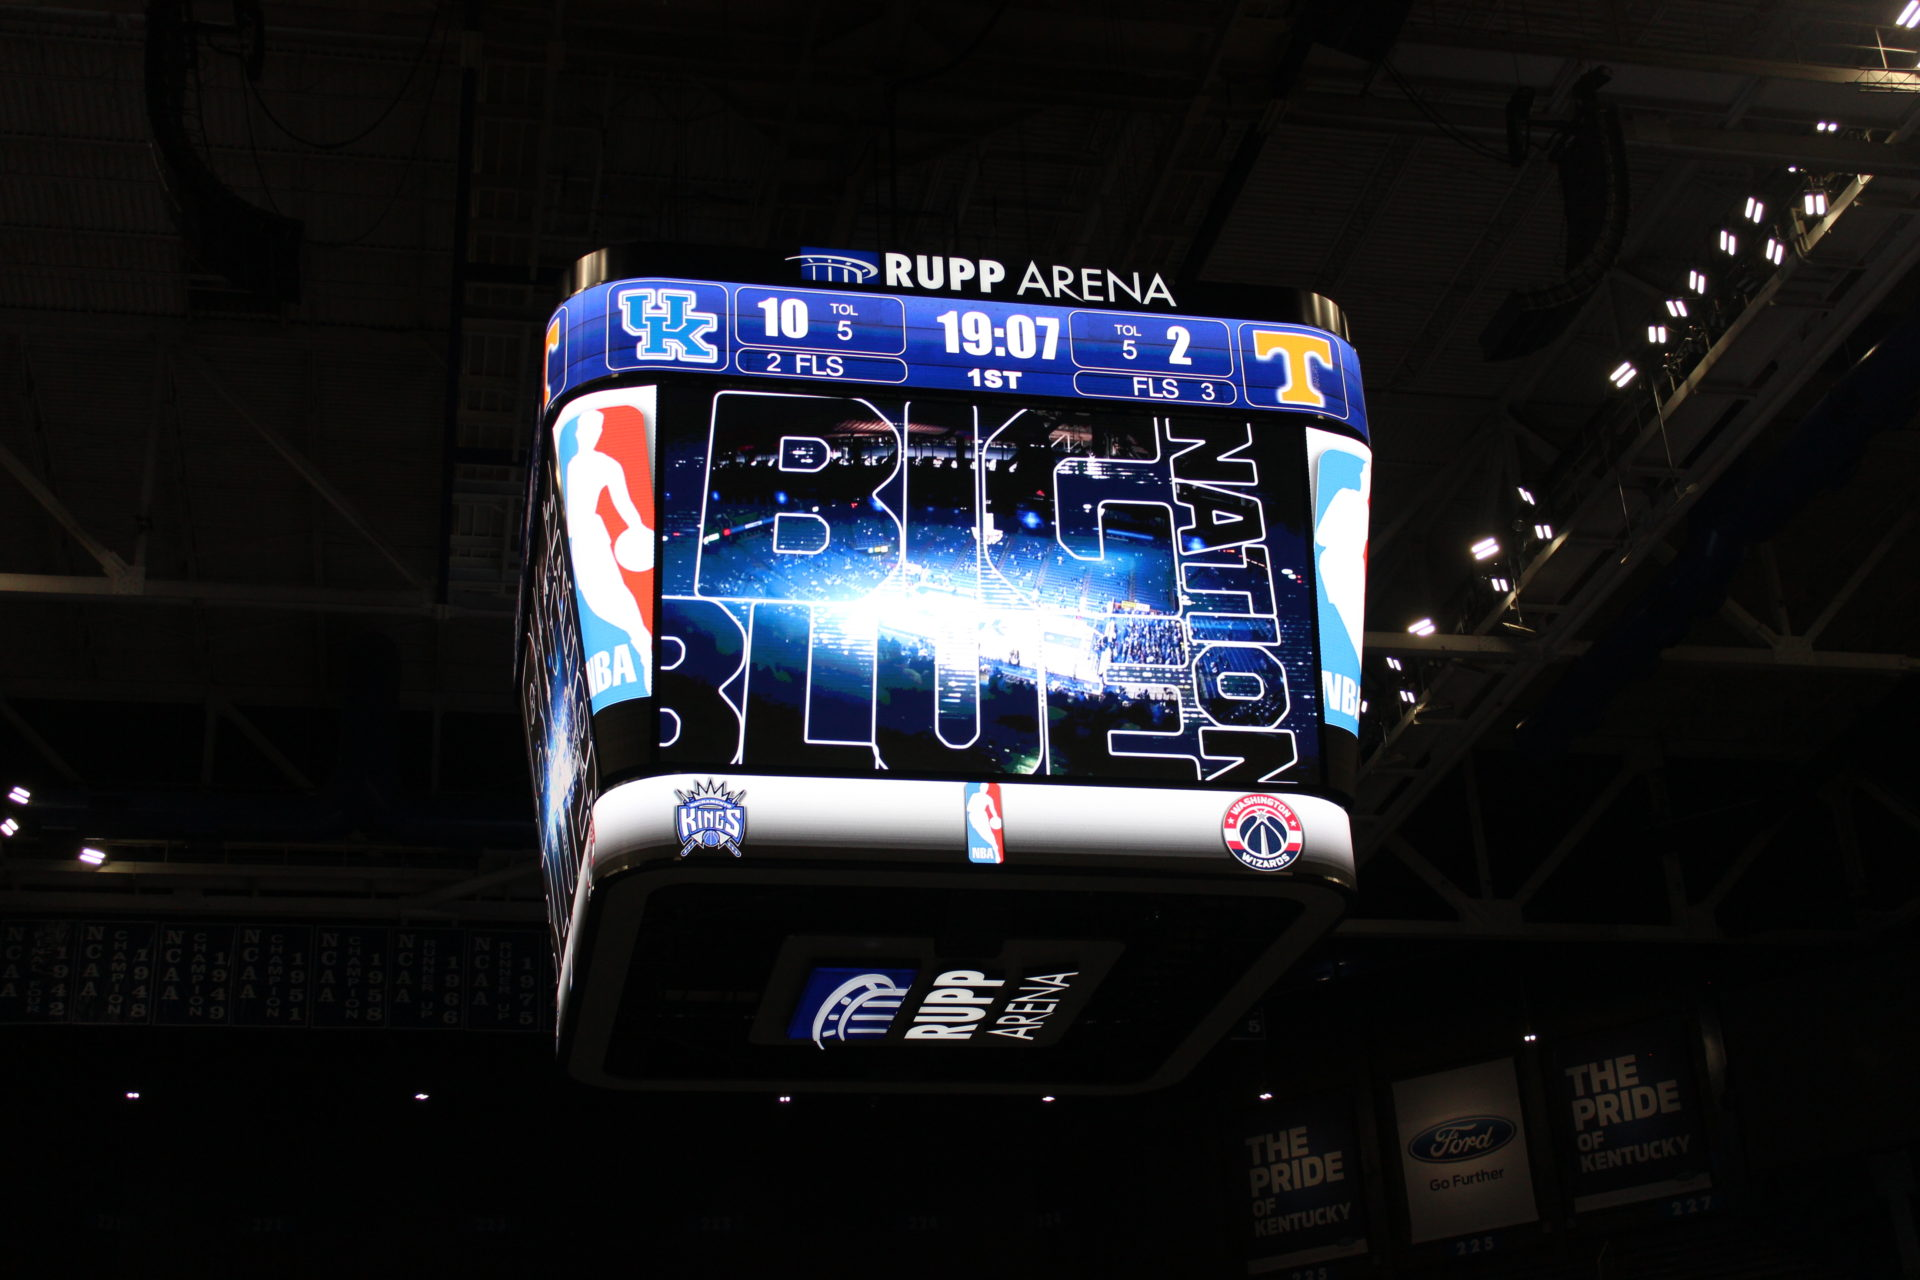 Rupp Arena unveils its new video board, designed by AJP in Partnership with Rupp Arena.